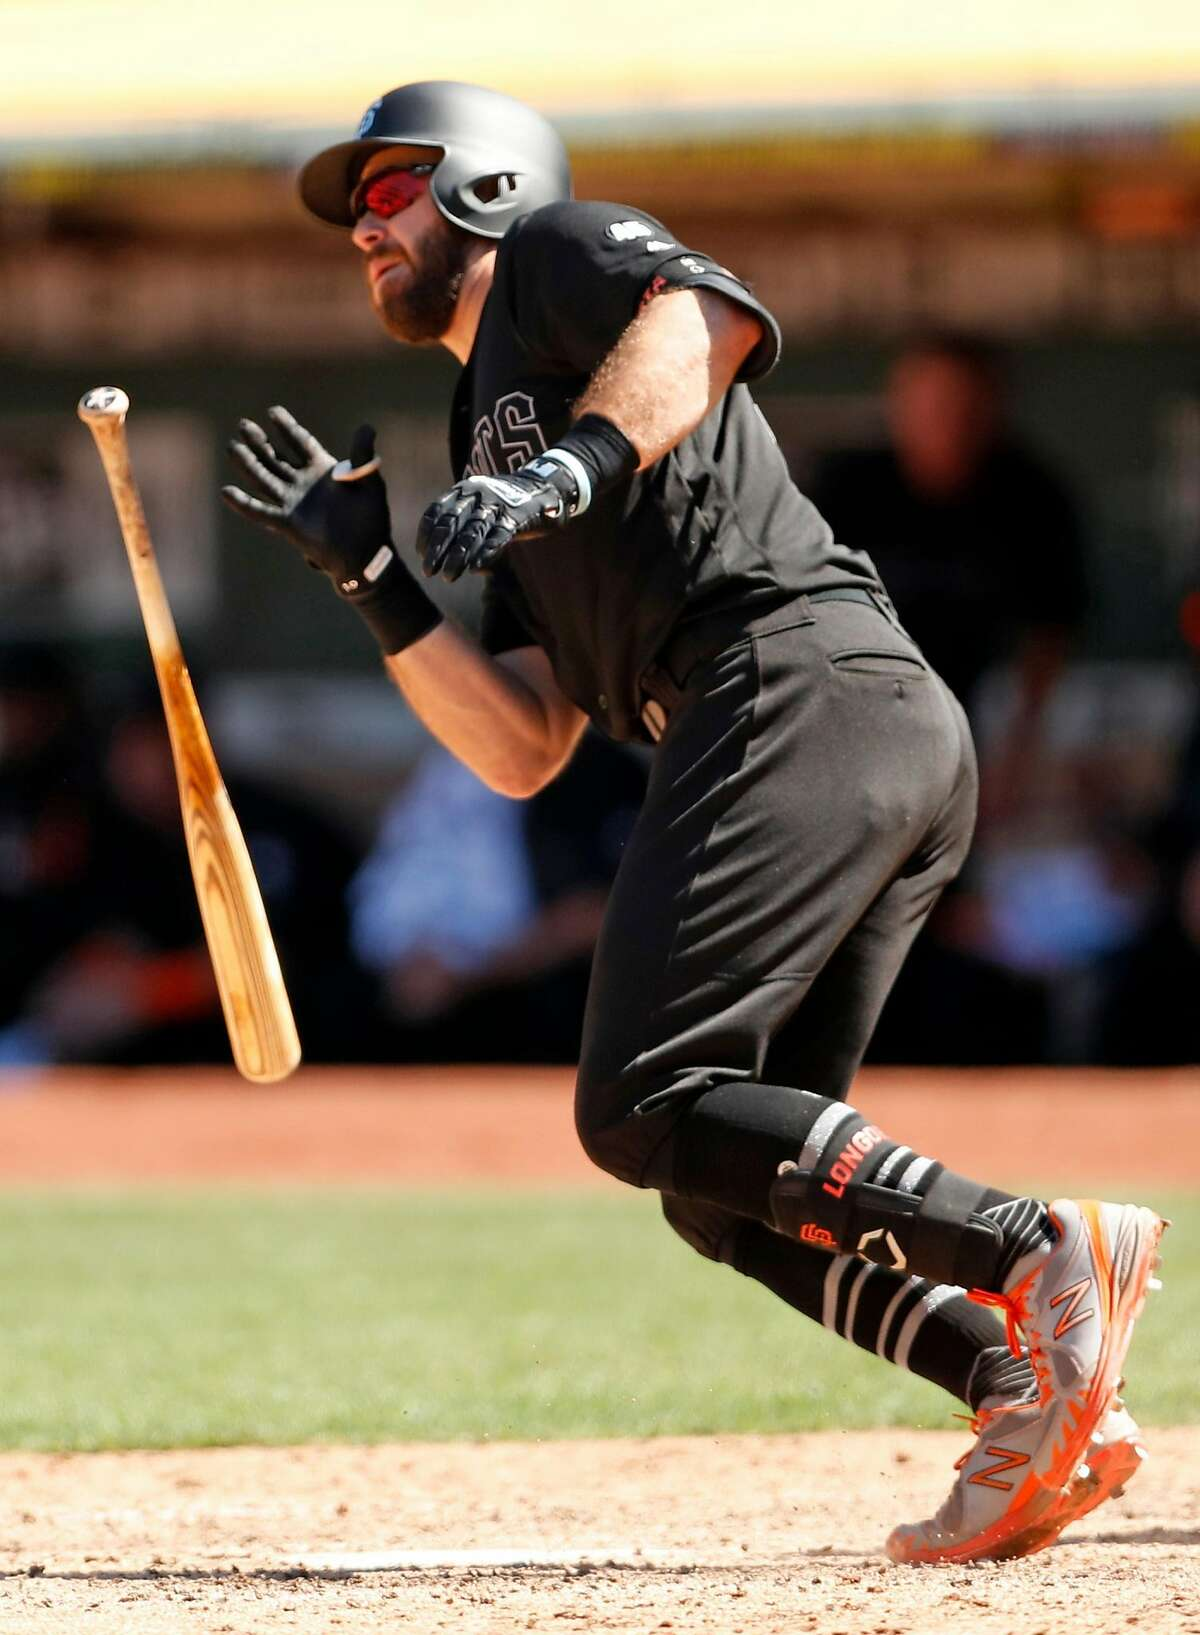 San Francisco Giants' Evan Longoria watches his go-ahead 2-run single in 7th inning against Oakland Athletics during MLB game at Oakland Coliseum in Oakland, Calif., on Sunday, August 25, 2019.